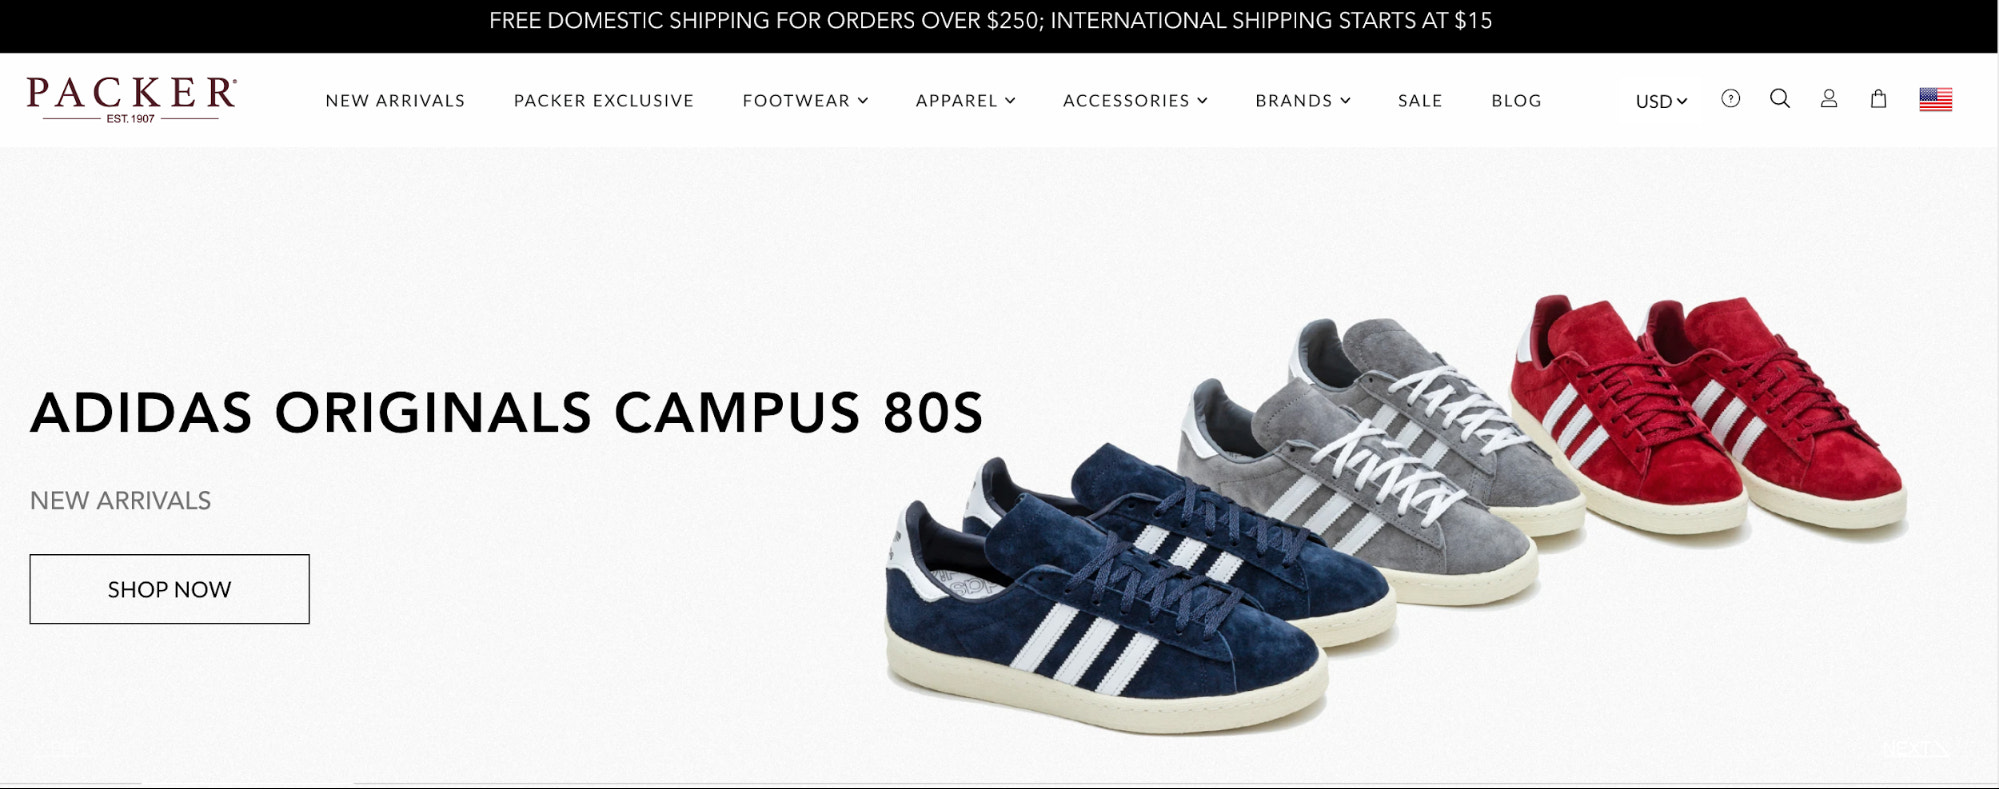 Packer Shoes homepage showcasing the Adidas sneakers they have available